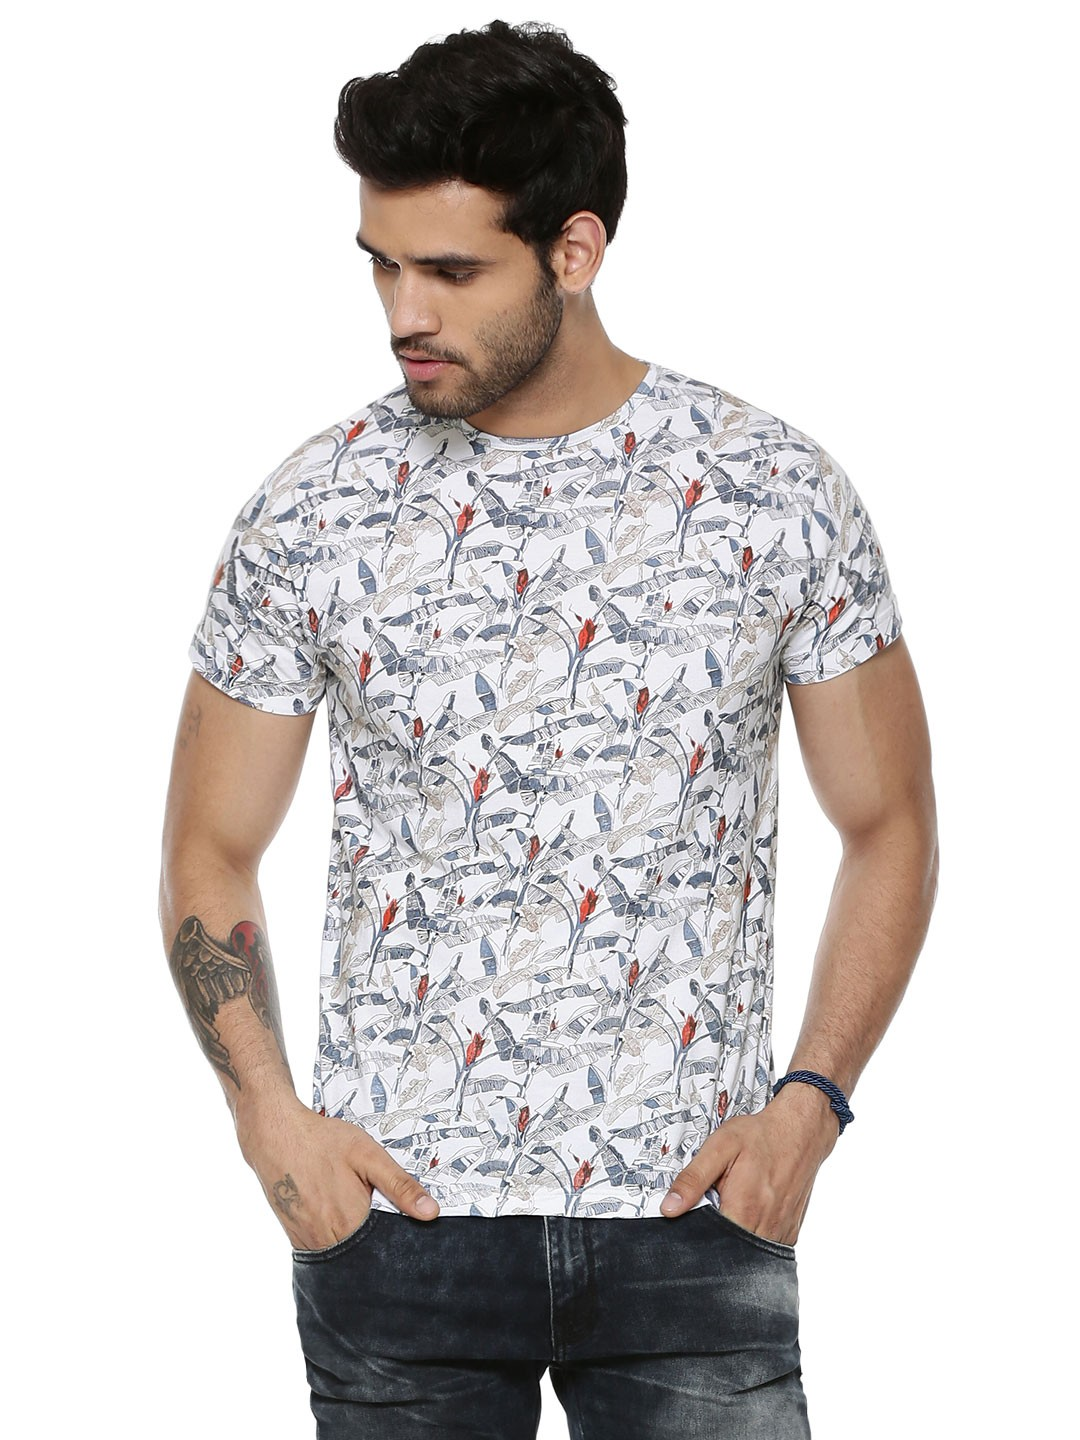 Buy pepe jeans rose floral printed t shirt for men men 39 s for Online printed t shirts